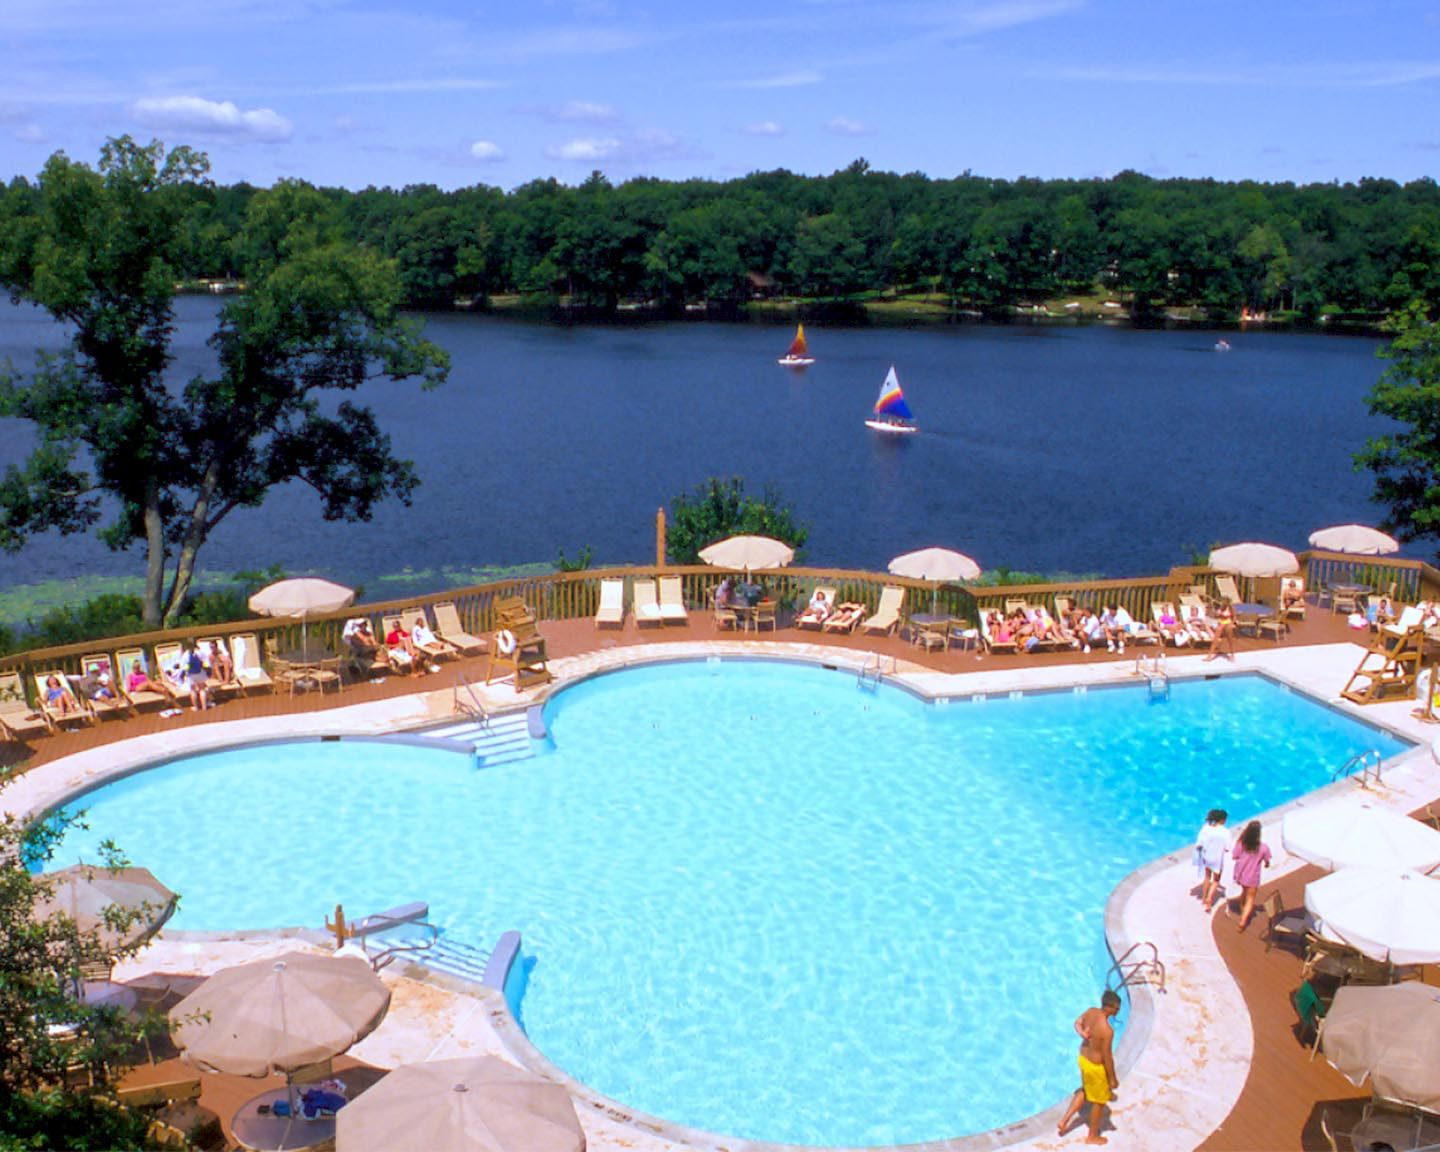 woodloch resort | all-inclusive family vacations in the poconos